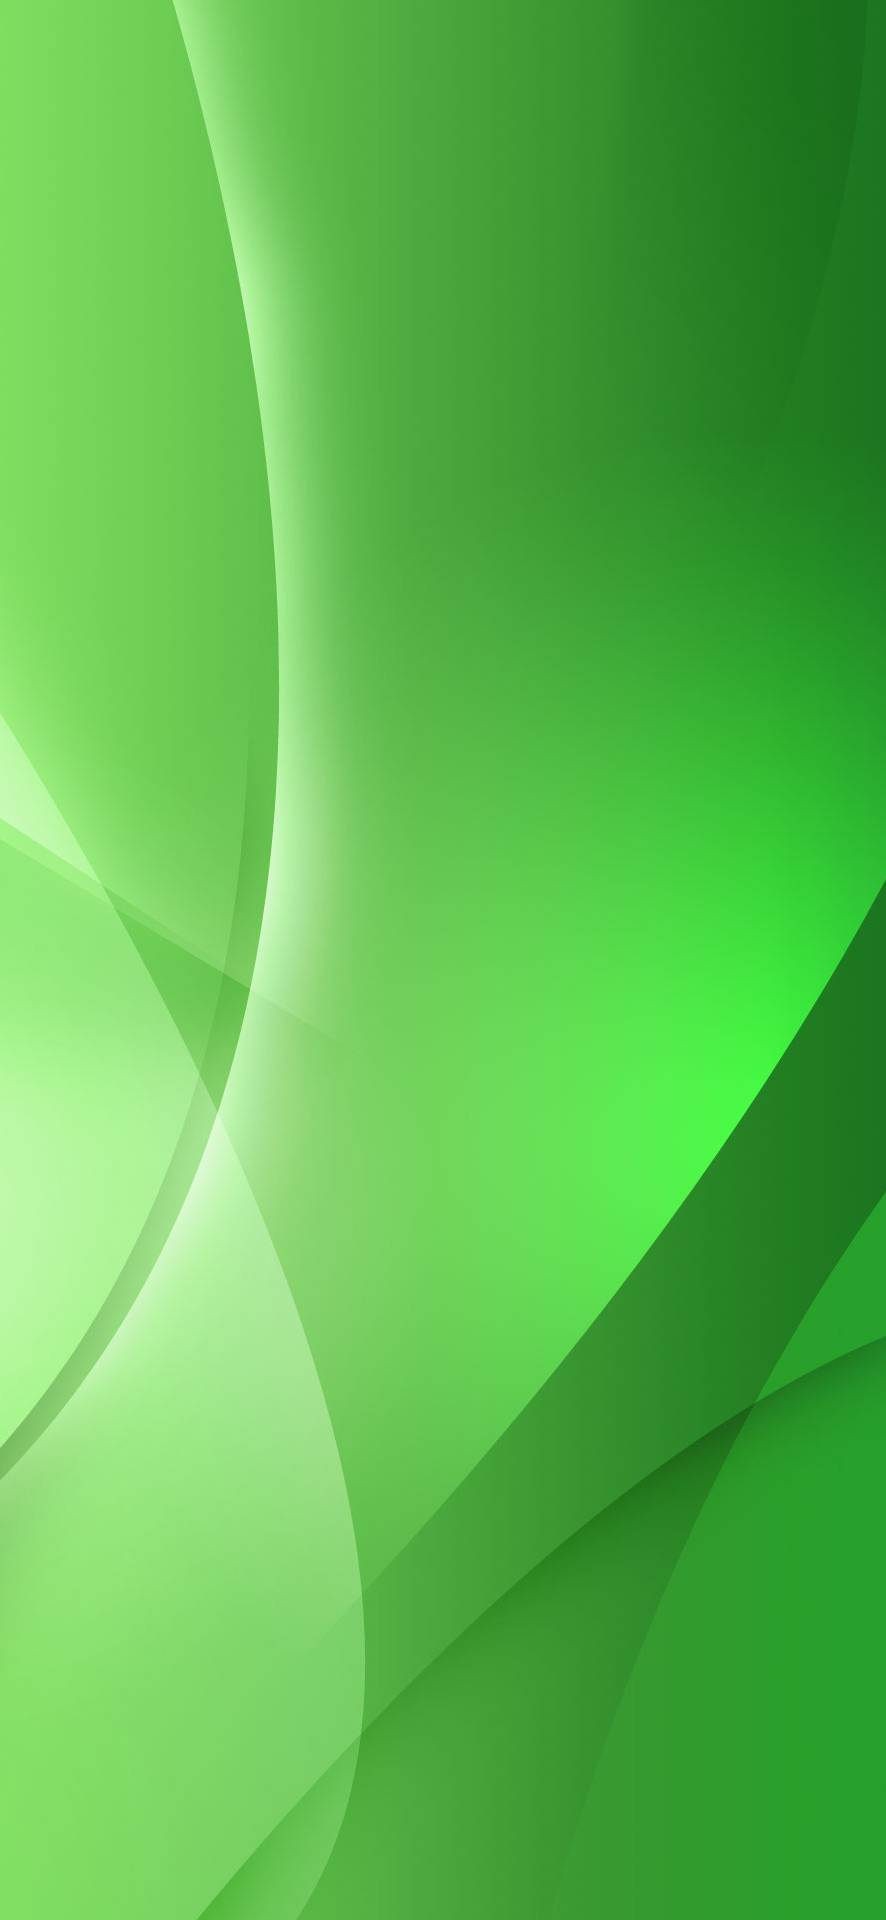 Green Background Phone Wallpaper 75